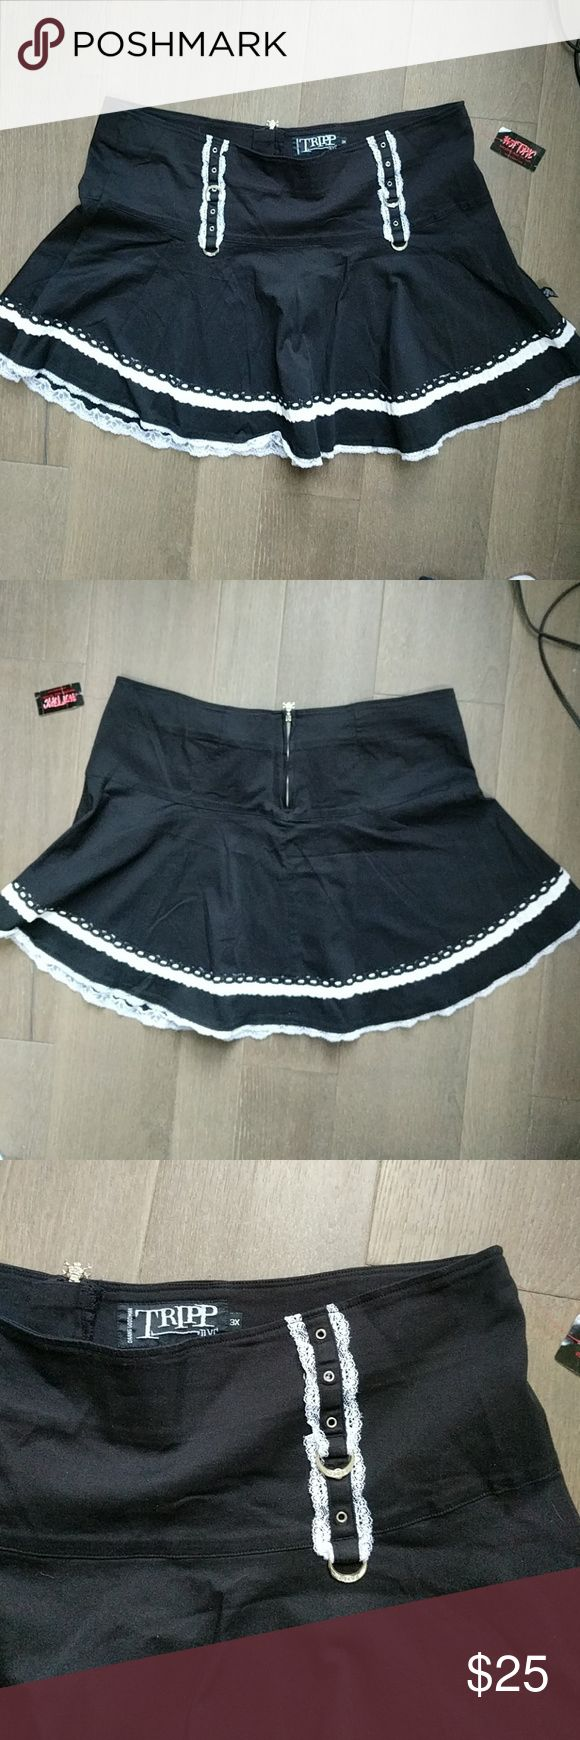 Tripp Hot Topic NWT Size 3XL Black Punk Goth Skirt Sexy schoolgirl skirt, very Alice in Wonderland. Two white lace ruffles, D-Rings on front, silver back zipper. New with tags. The zipper pull is a skull & crossbones. Tripp nyc Skirts Mini